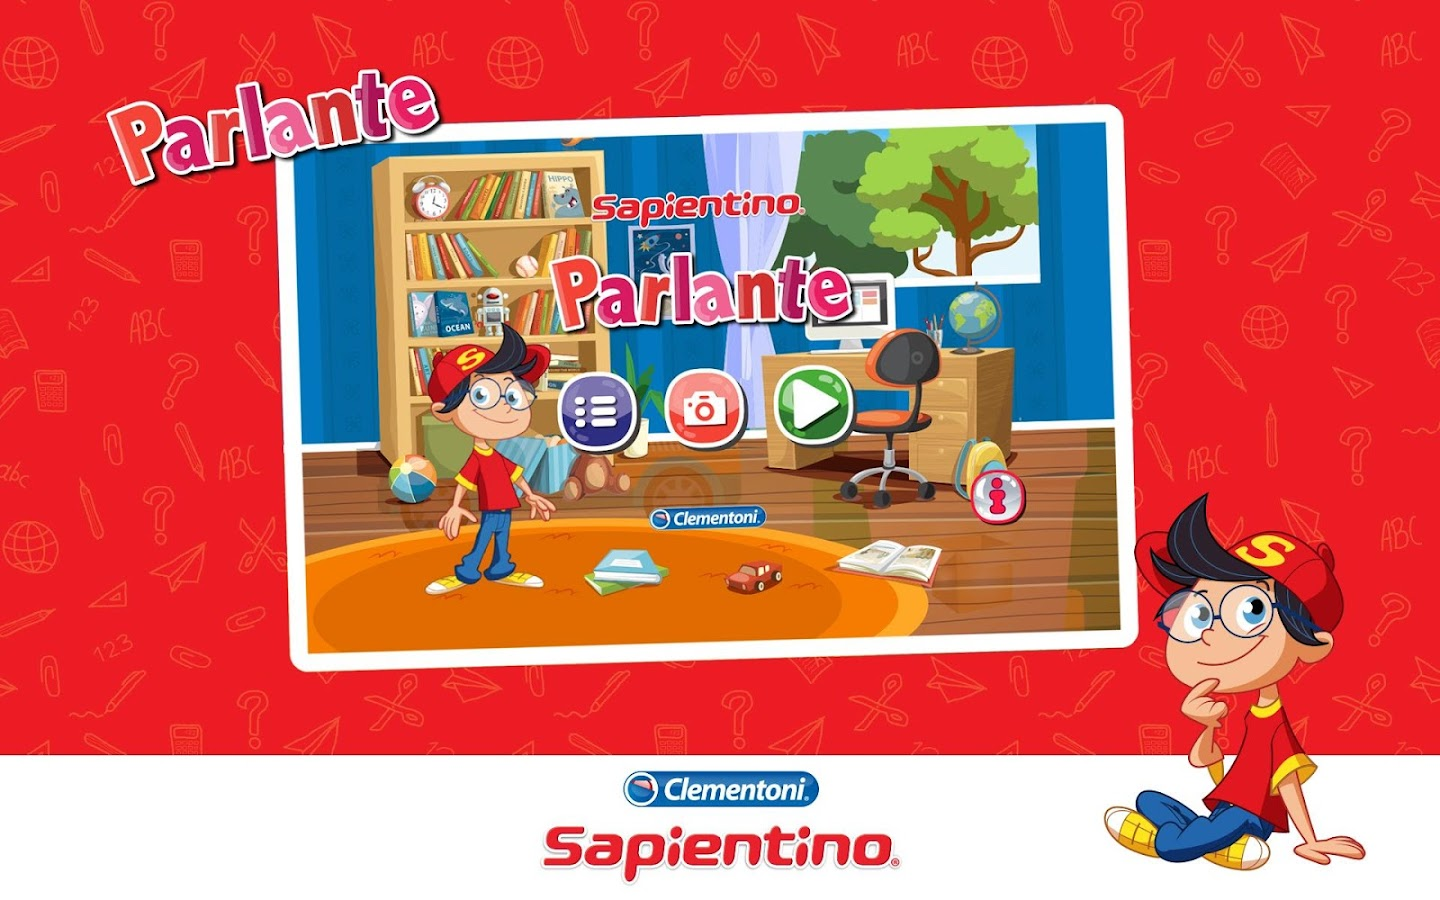 Sapientino Parlante 1 0 APK Download Android Educational Games